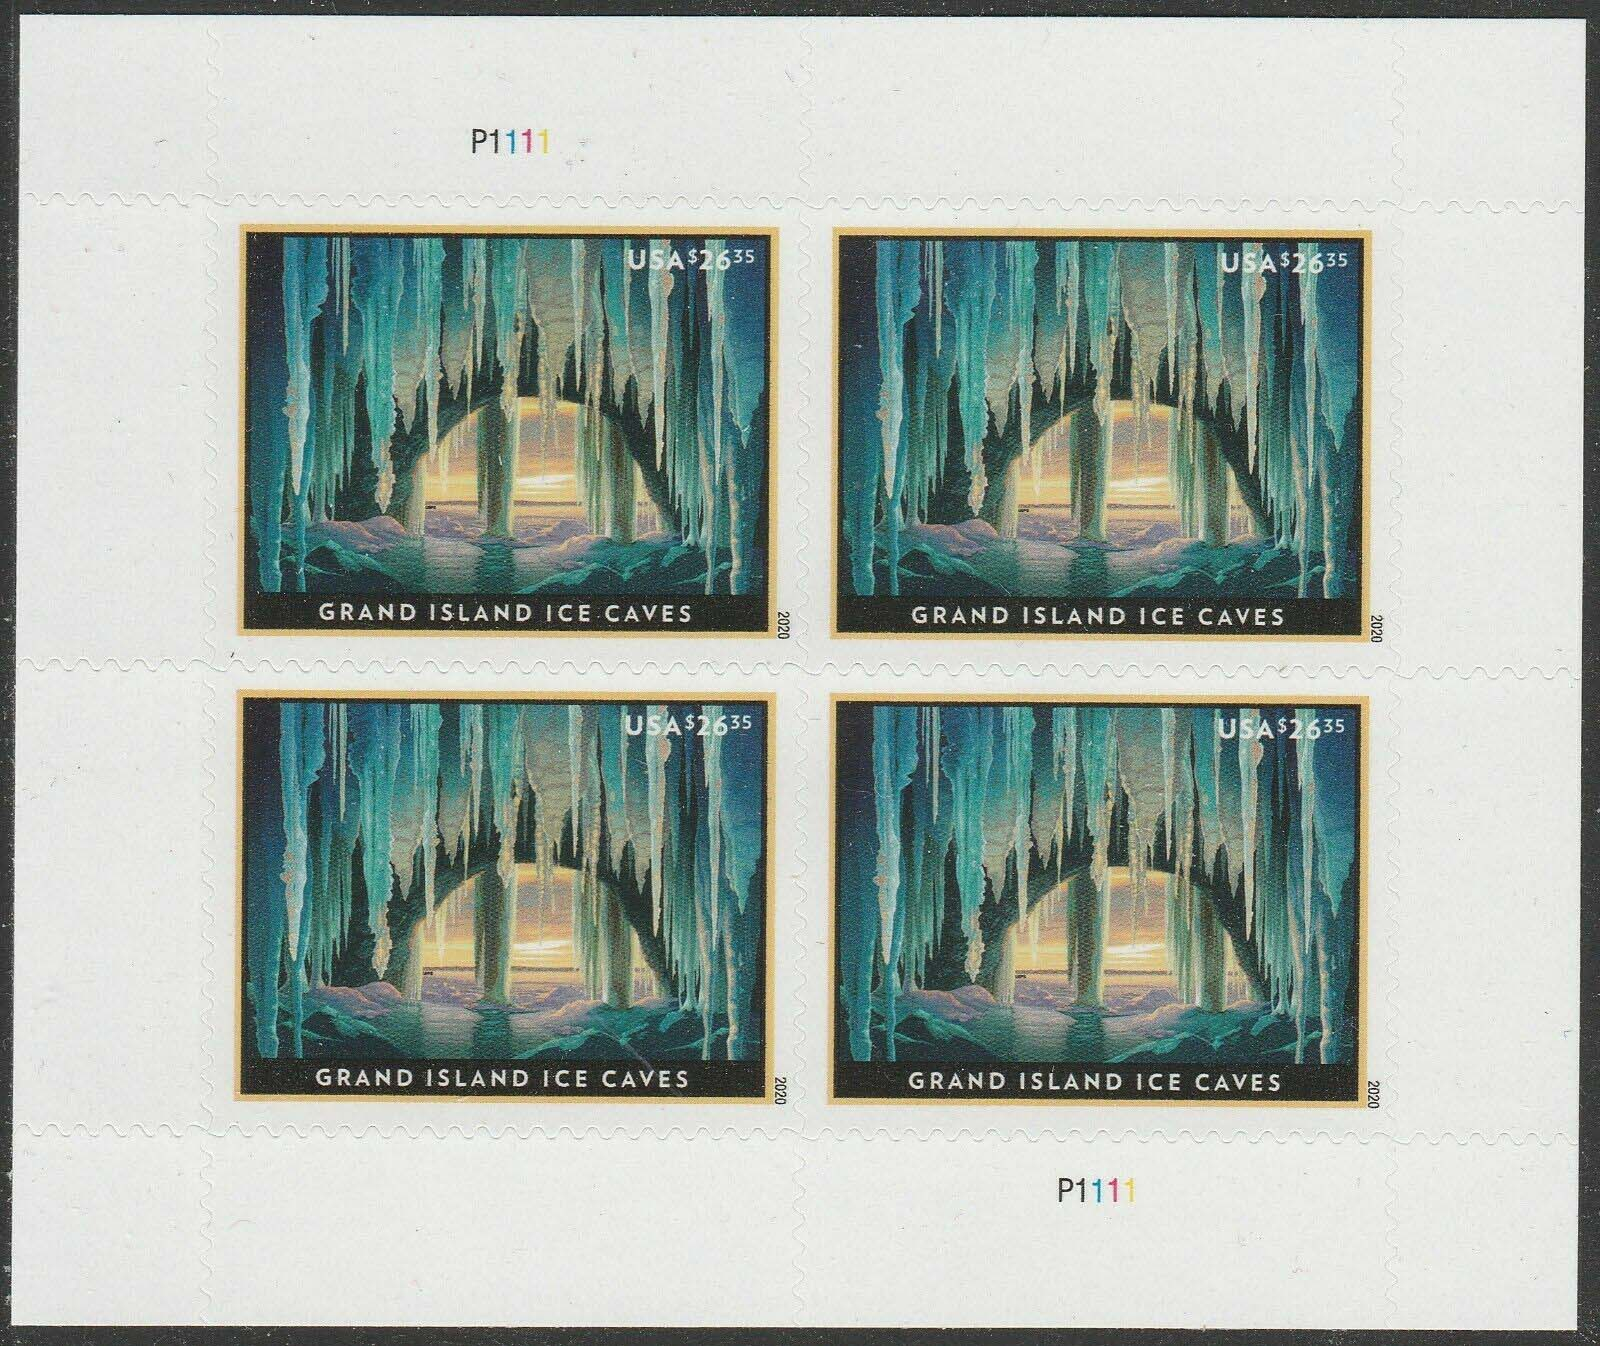 Scott #5430, Express Mail, $26.35 Sheet of 4 stamps, Grand Island Ice Caves